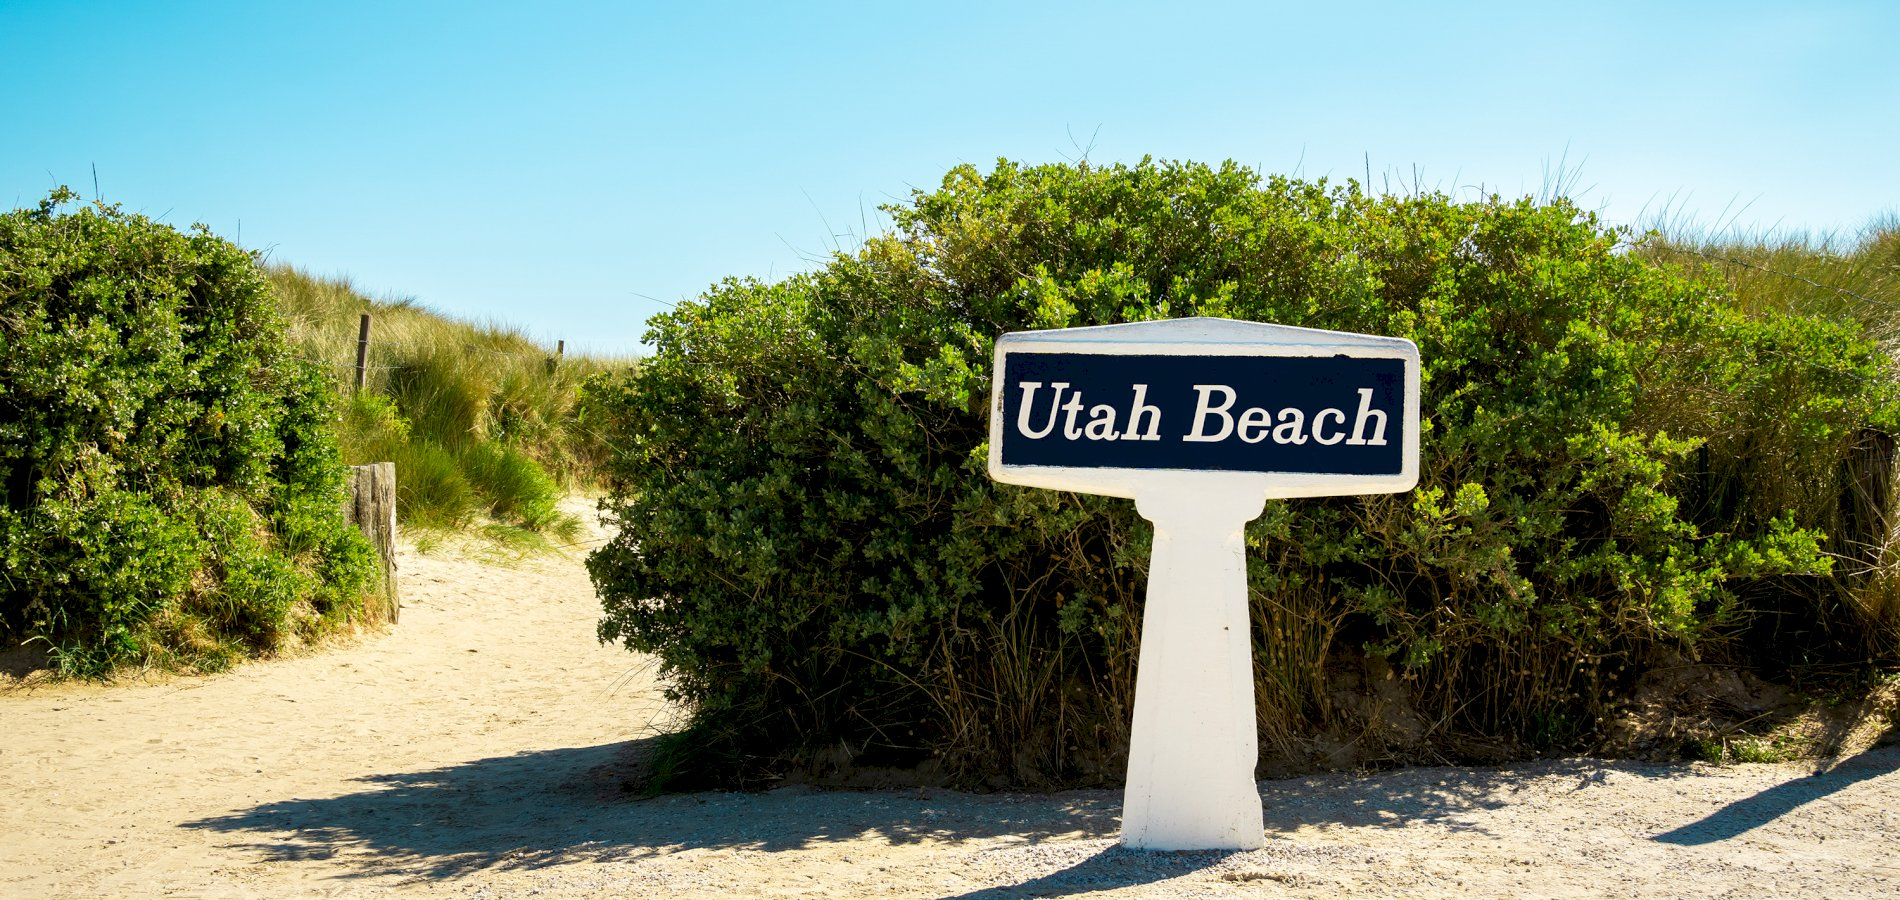 Ophorus Tours - Omaha & Utah Beaches D-DAY Sites Private Full Day Trip from Bayeux for 2 persons